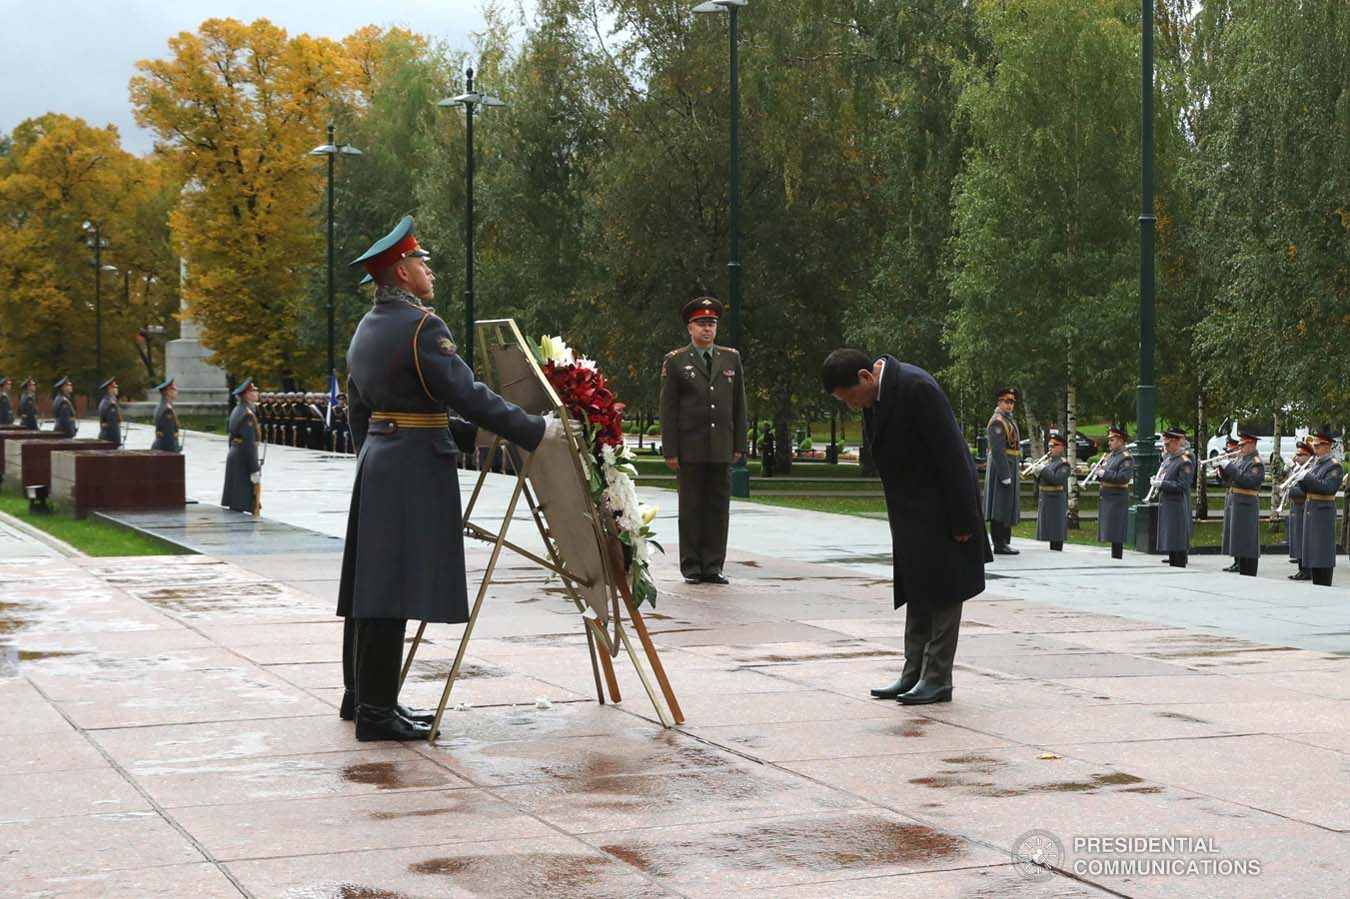 President Rodrigo Roa Duterte honors the fallen Soviet soldiers who fought during World War II as he leads the wreath-laying ceremony at the Tomb of the Unknown Soldier in Moscow, Russian Federation on October 4, 2019. ROBINSON NIÑAL JR./PRESIDENTIAL PHOTO